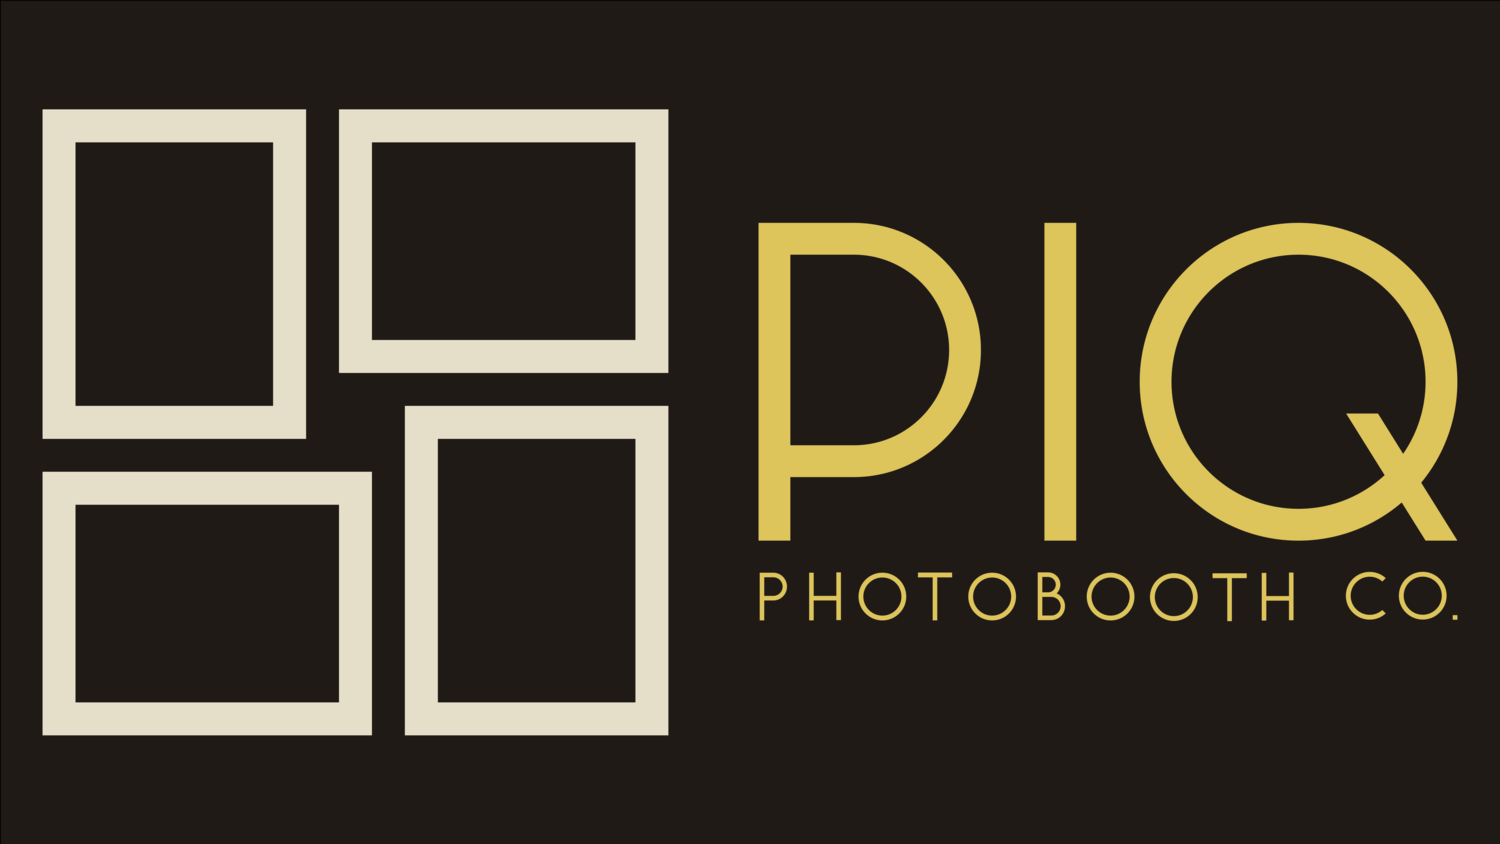 PIQ PHOTOBOOTH CO. | Seattle Photobooth Rental Services